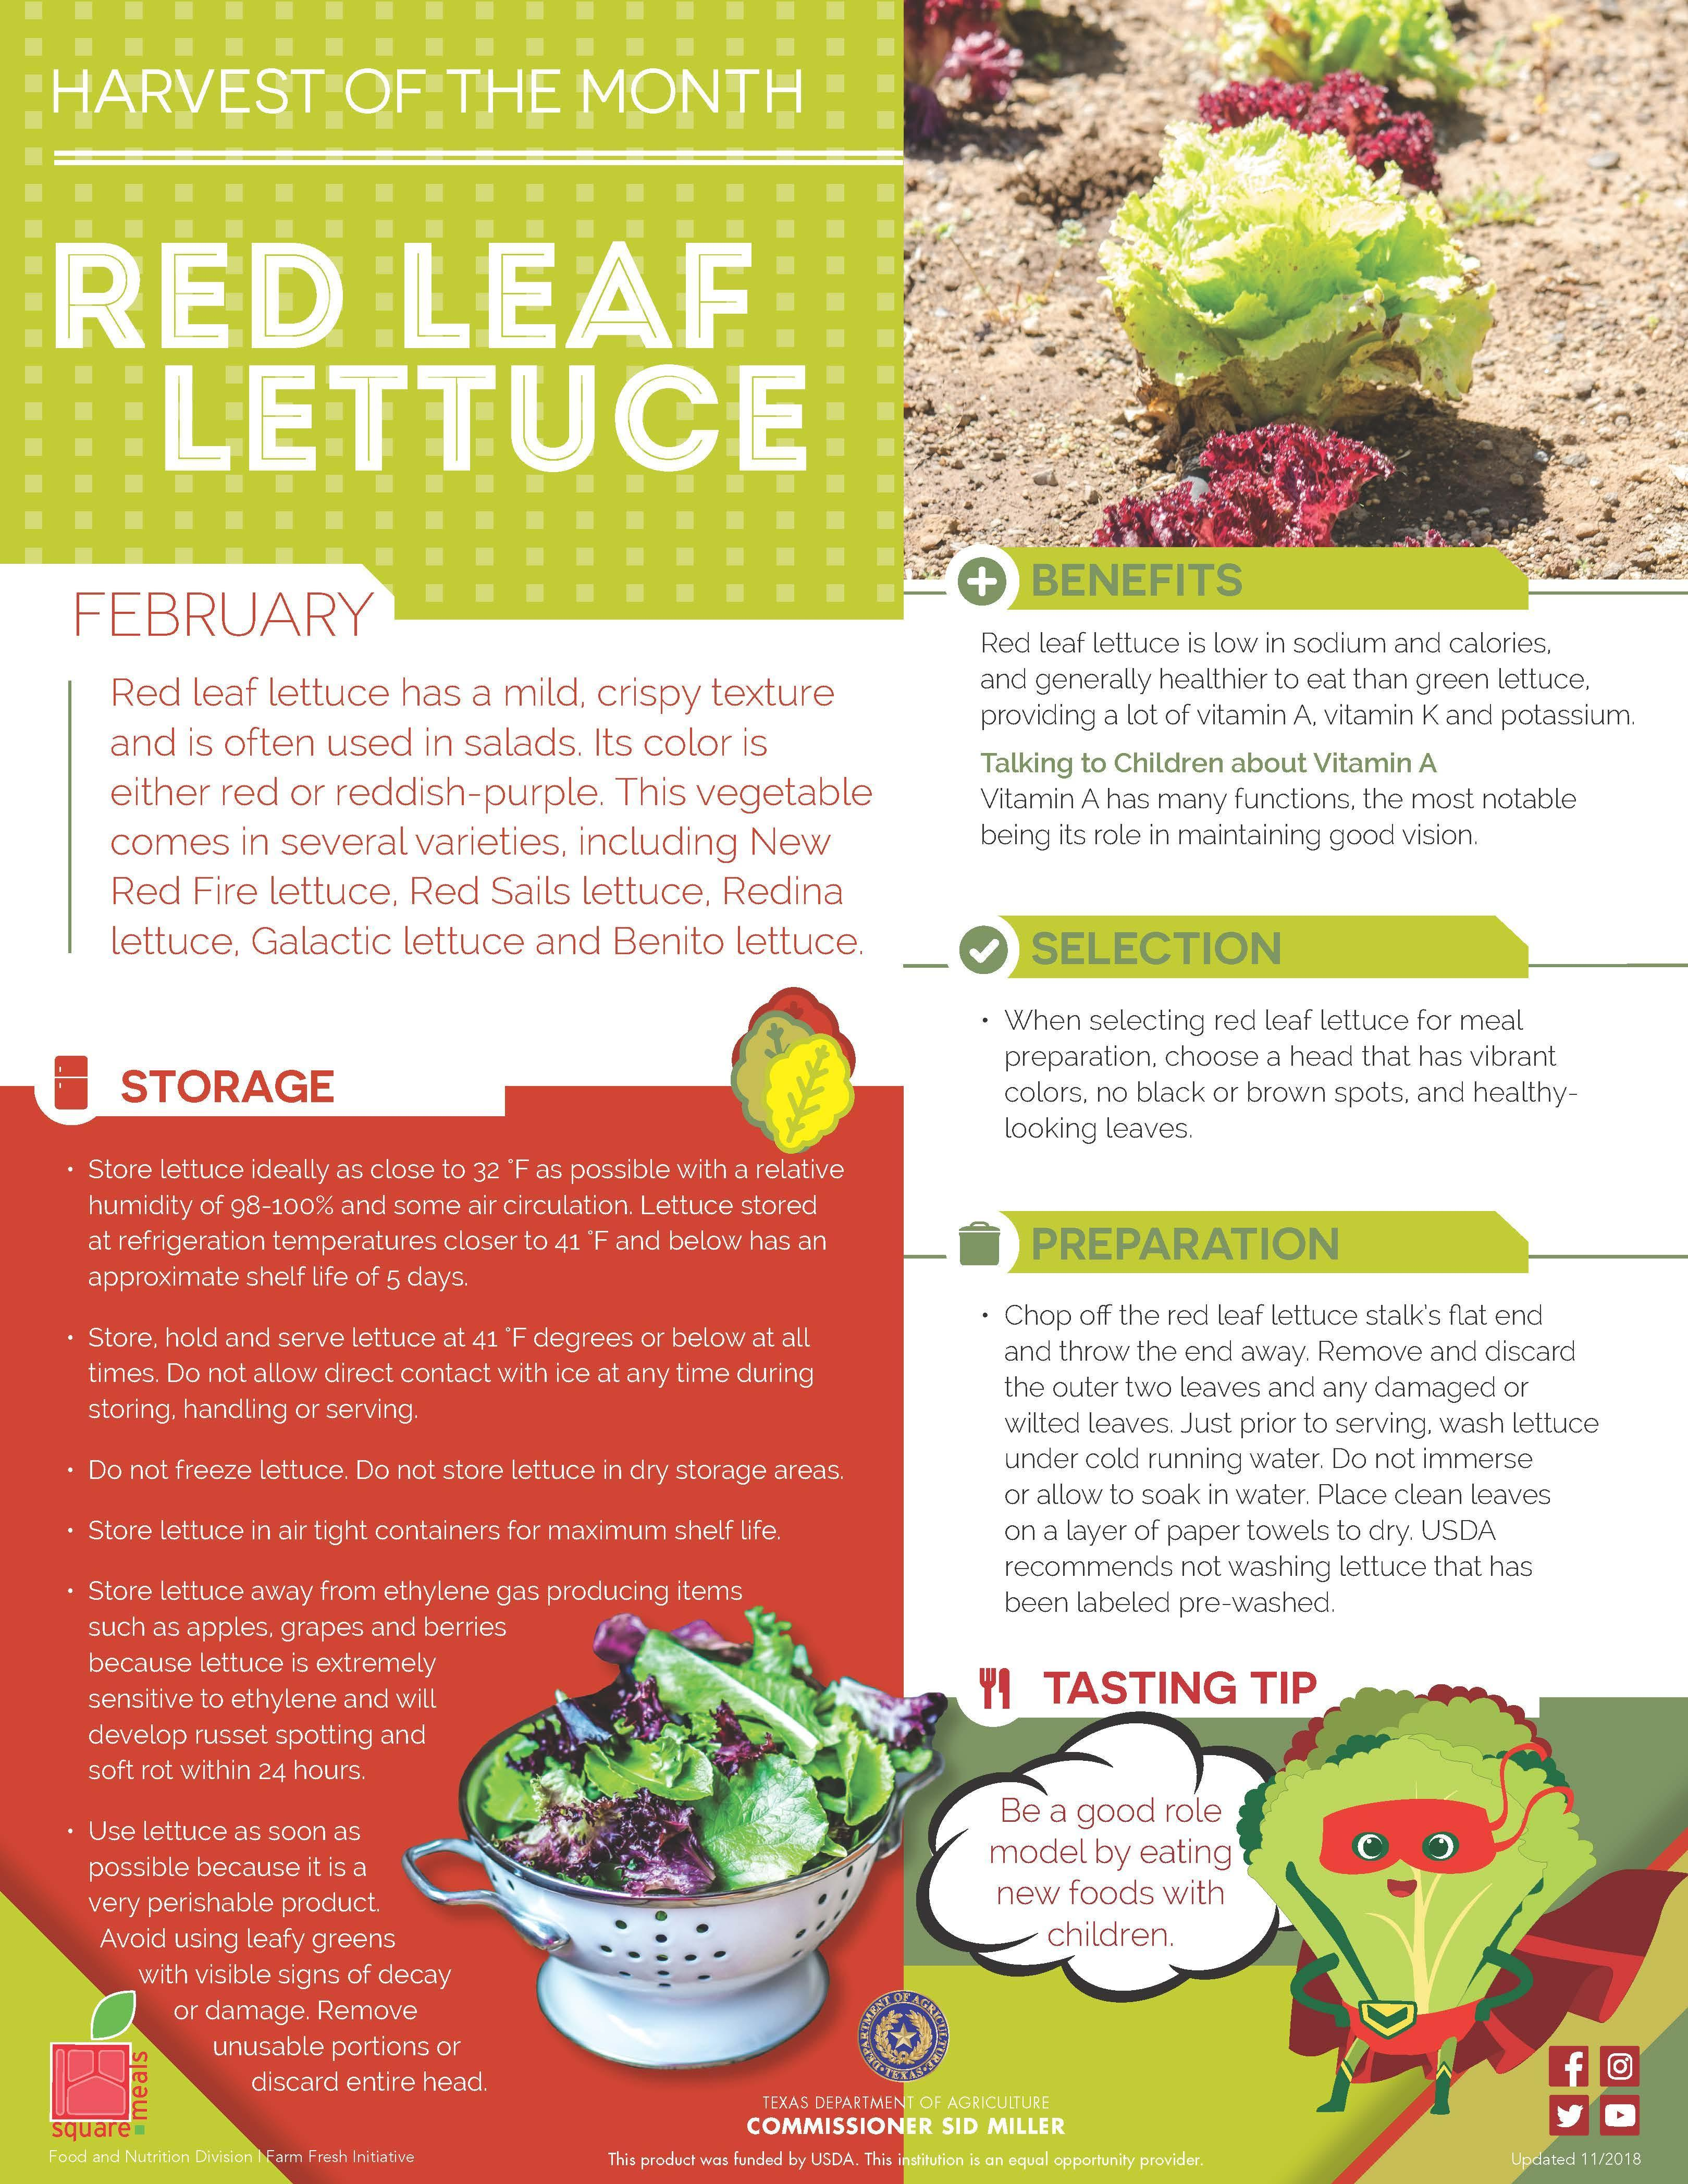 Monthly Harvest, Red leaf lettuce has a mild, crispy texture and is often used in salads. Its color is either red or reddish-purple. This vegetable comes in several varieties, including New Red Fire lettuce, Red Sails lettuce, Redina lettuce, Galactic lettuce and Benito lettuce.